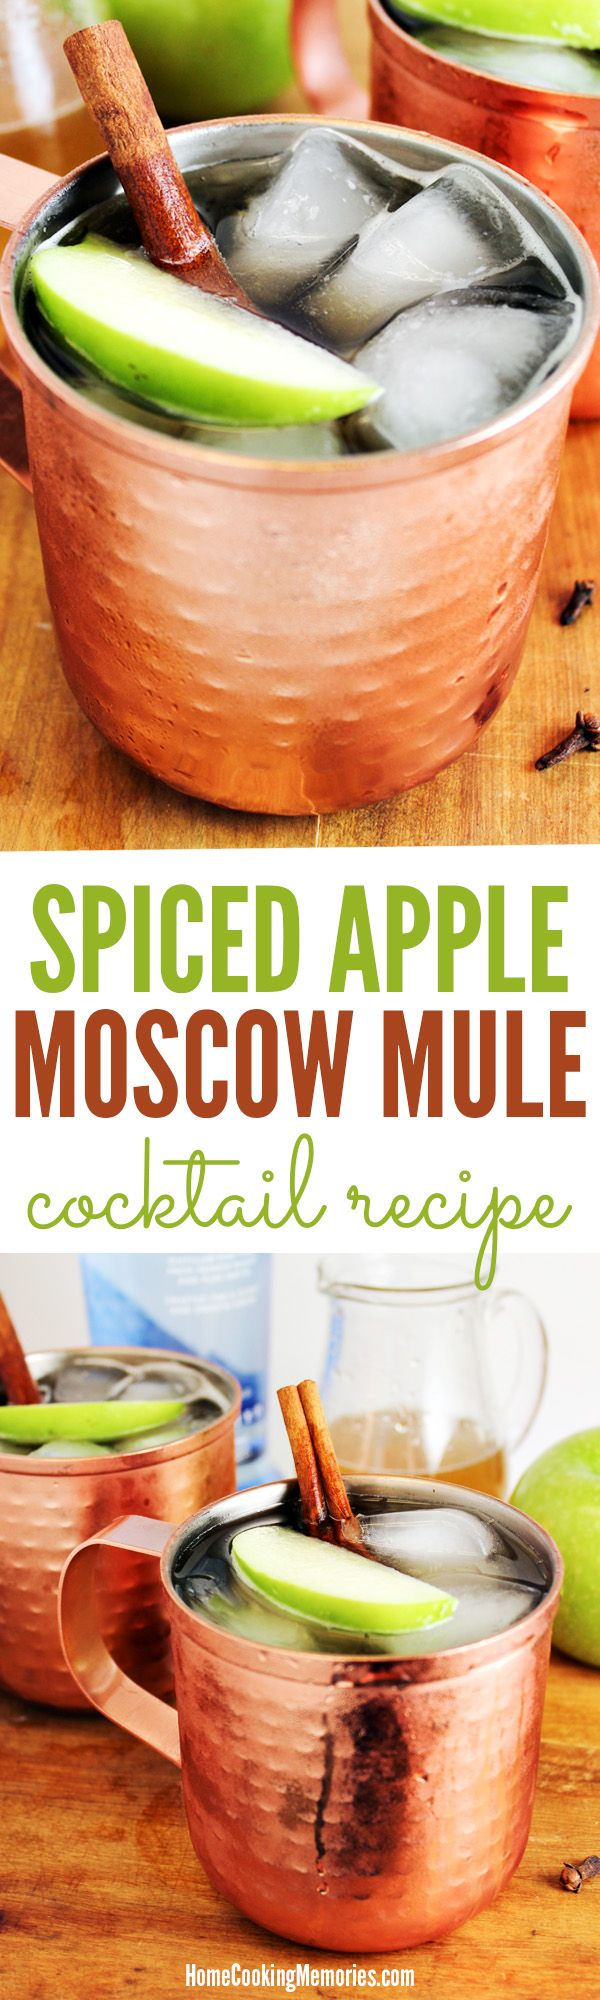 SO GOOD! This Spiced Apple Moscow Mule cocktail recipe is made with apple cider and a spiced simple syrup (with cinnamon & cloves), plus vodka & ginger beer. Especially great when served in a copper mug.